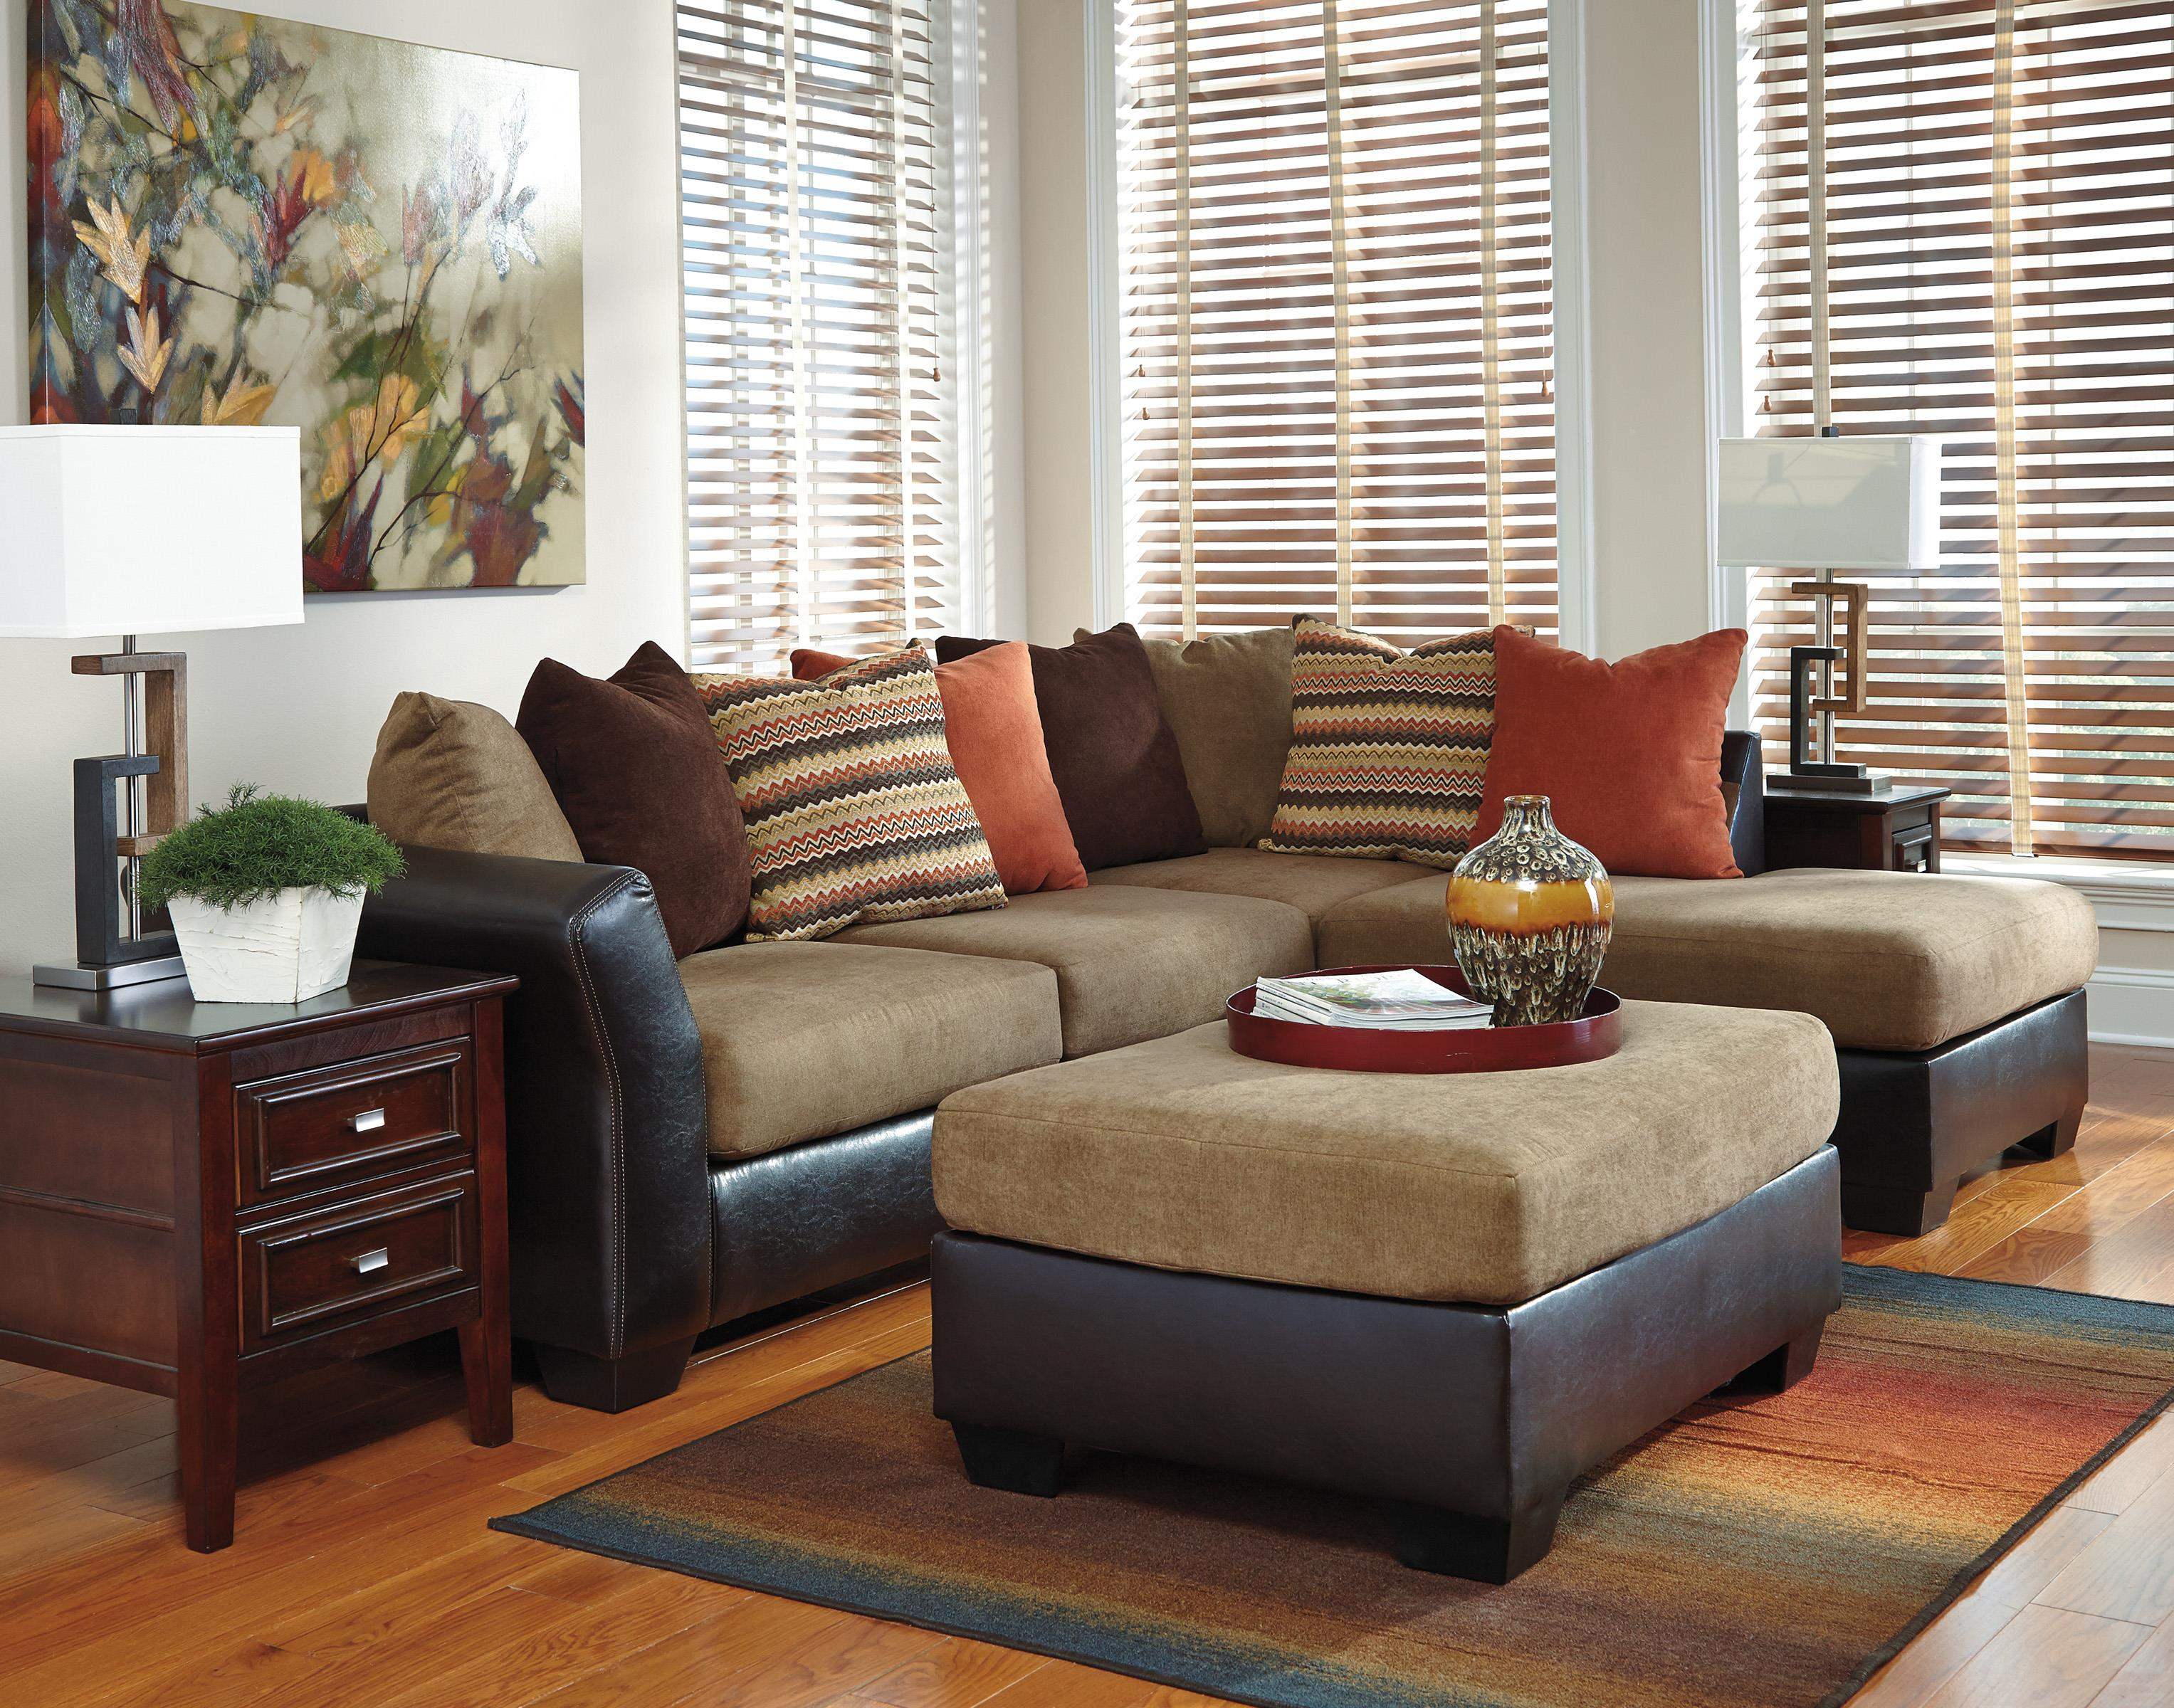 Signature Design by Ashley Armant Stationary Living Room Group - Item Number: 20202 Living Room Group 1